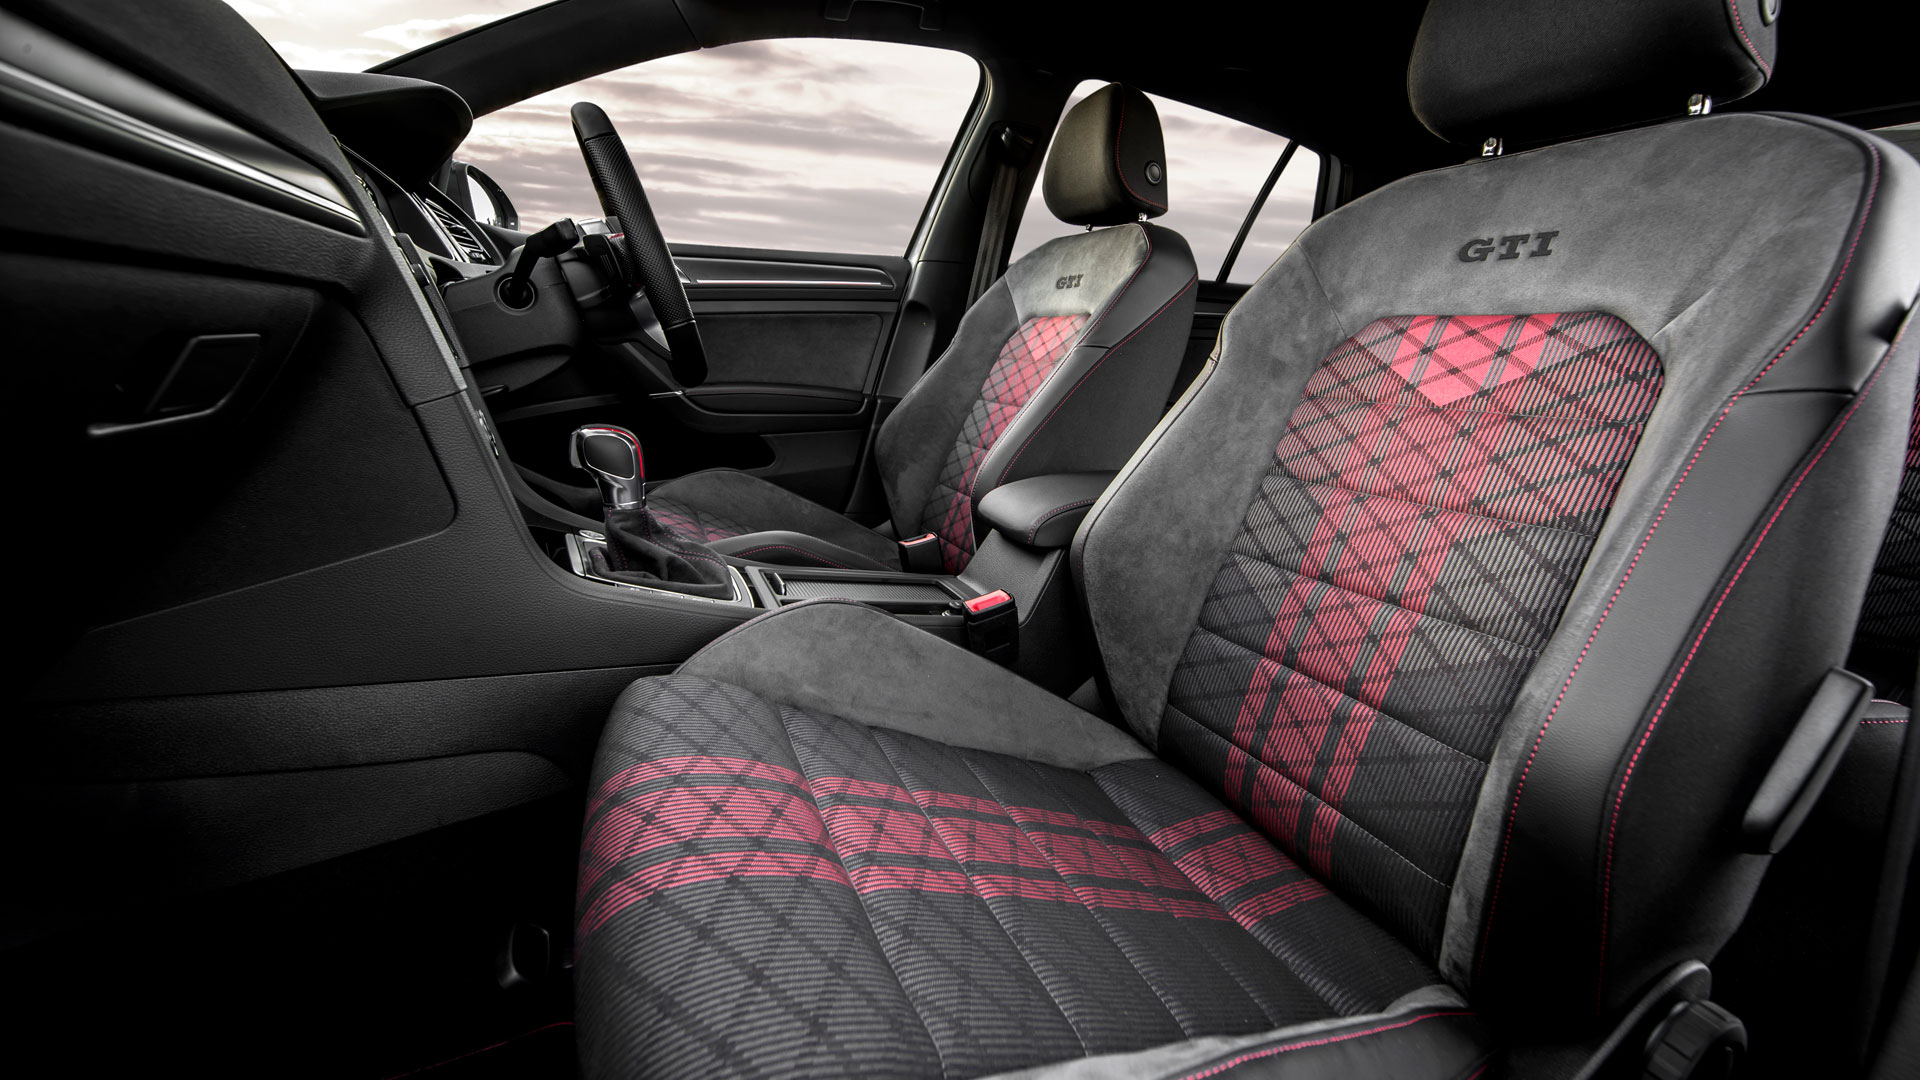 Volkswagen Golf GTI TCR seats